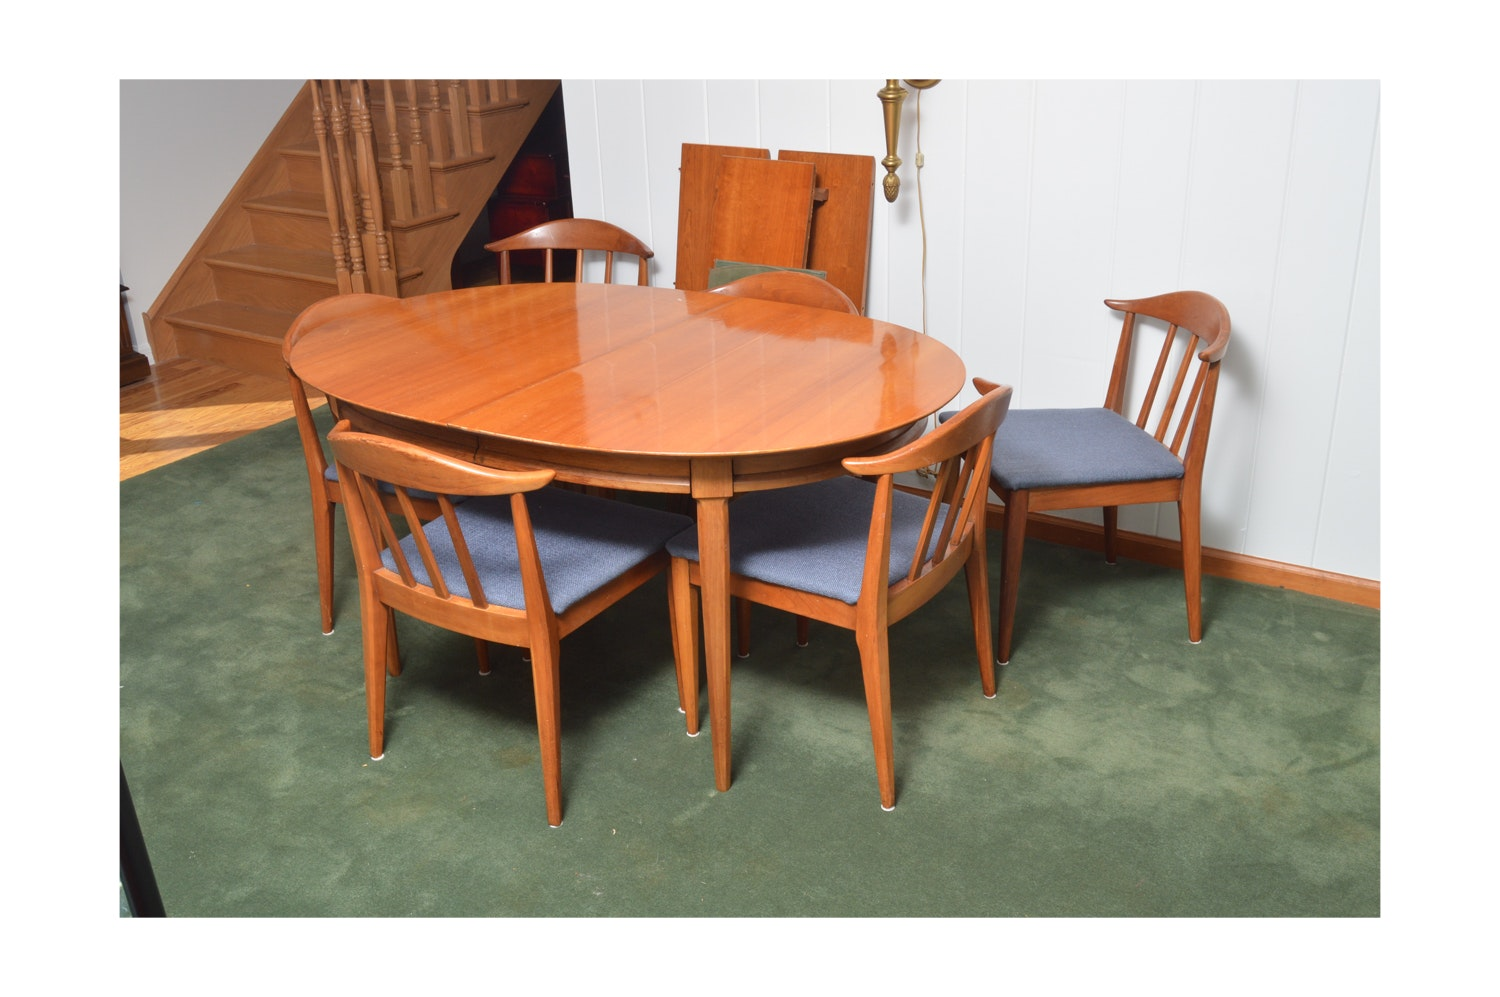 Vintage Modern Style Dining Table and Chairs